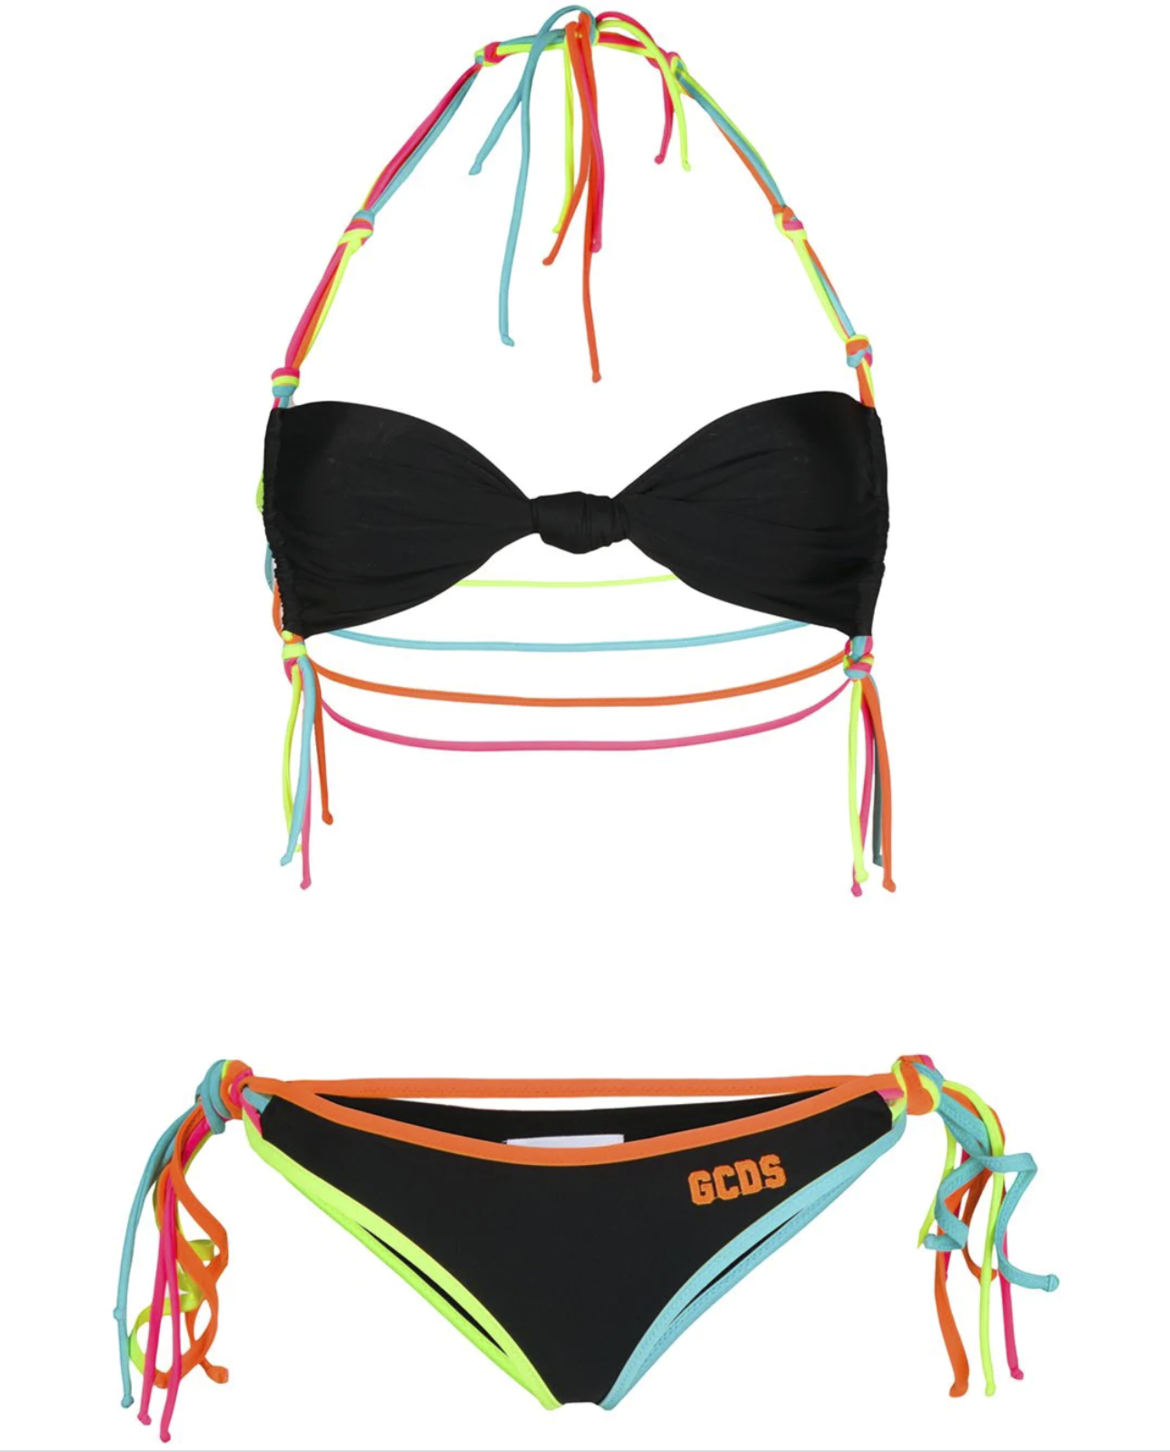 GCDS halter neck logo print bikini HK$1,119 from farfetch